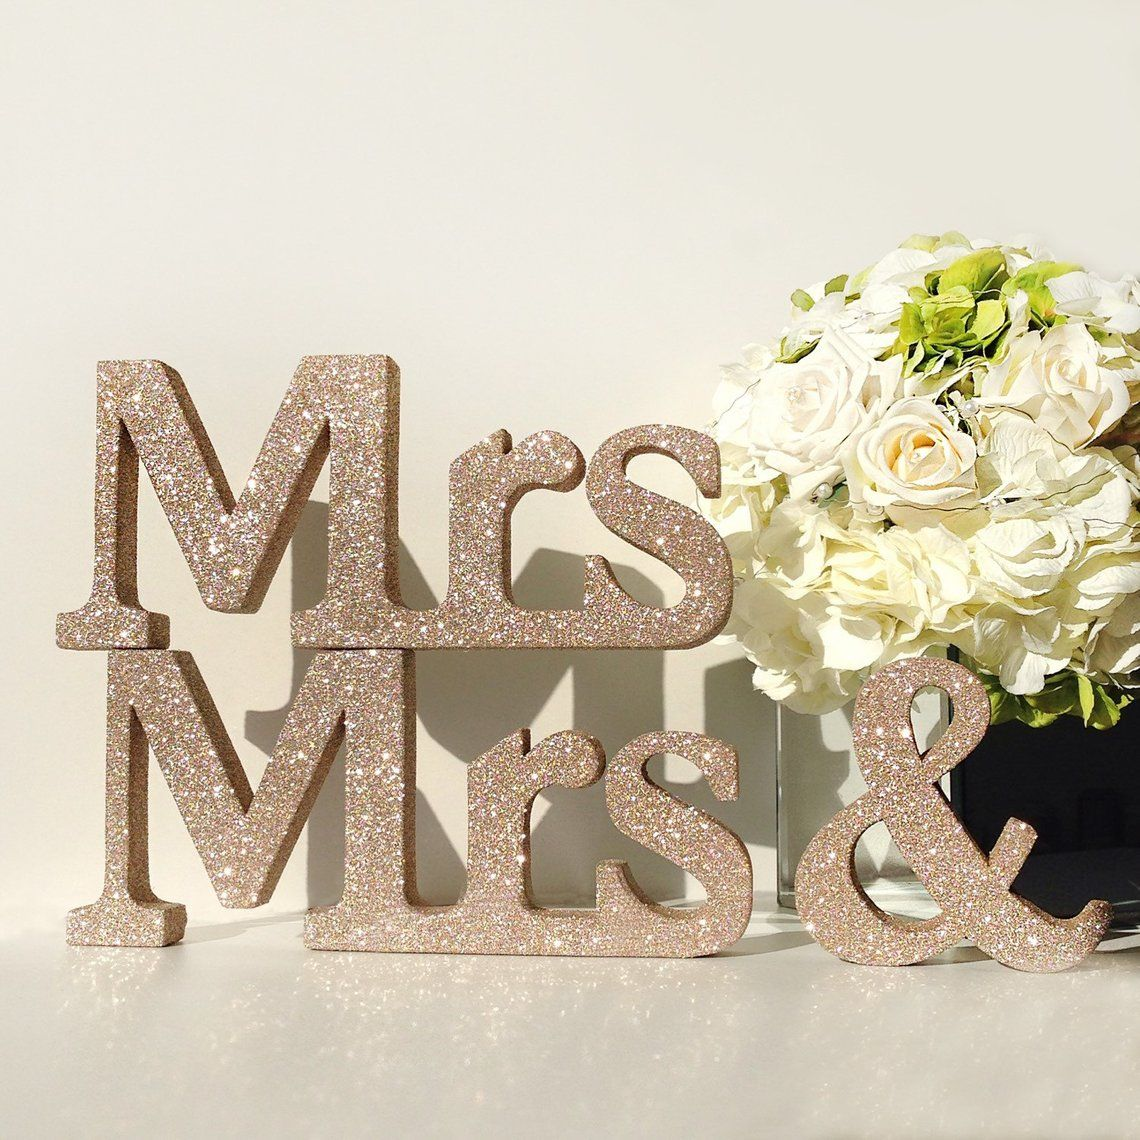 Wedding mr and mrs  signs Wedding Signs glitter Mr and Mrs purple glitter Mr and Mrs wedding decor wood signs Wedding  signs glitter